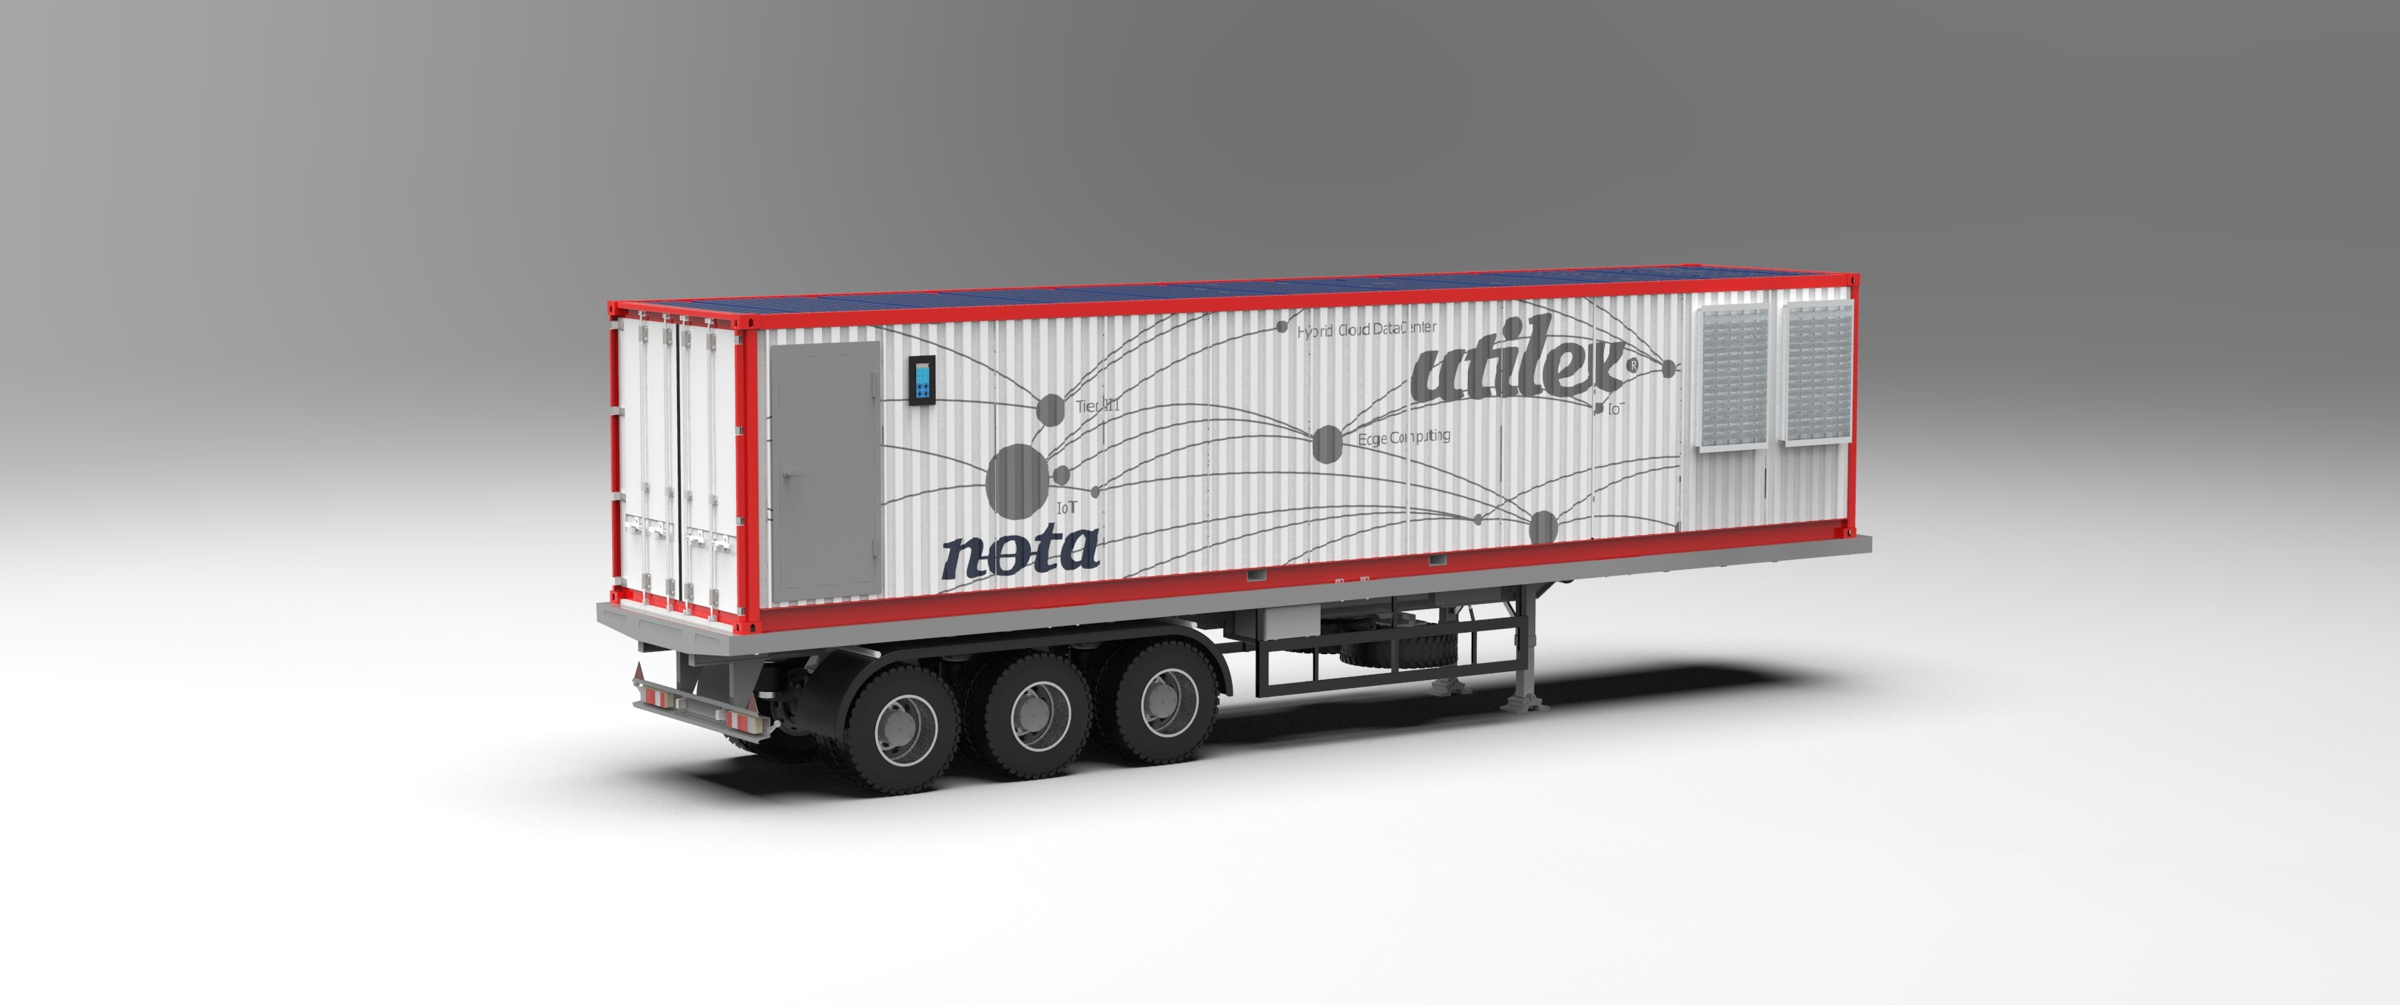 Mobile DataCenter NOTA container 40